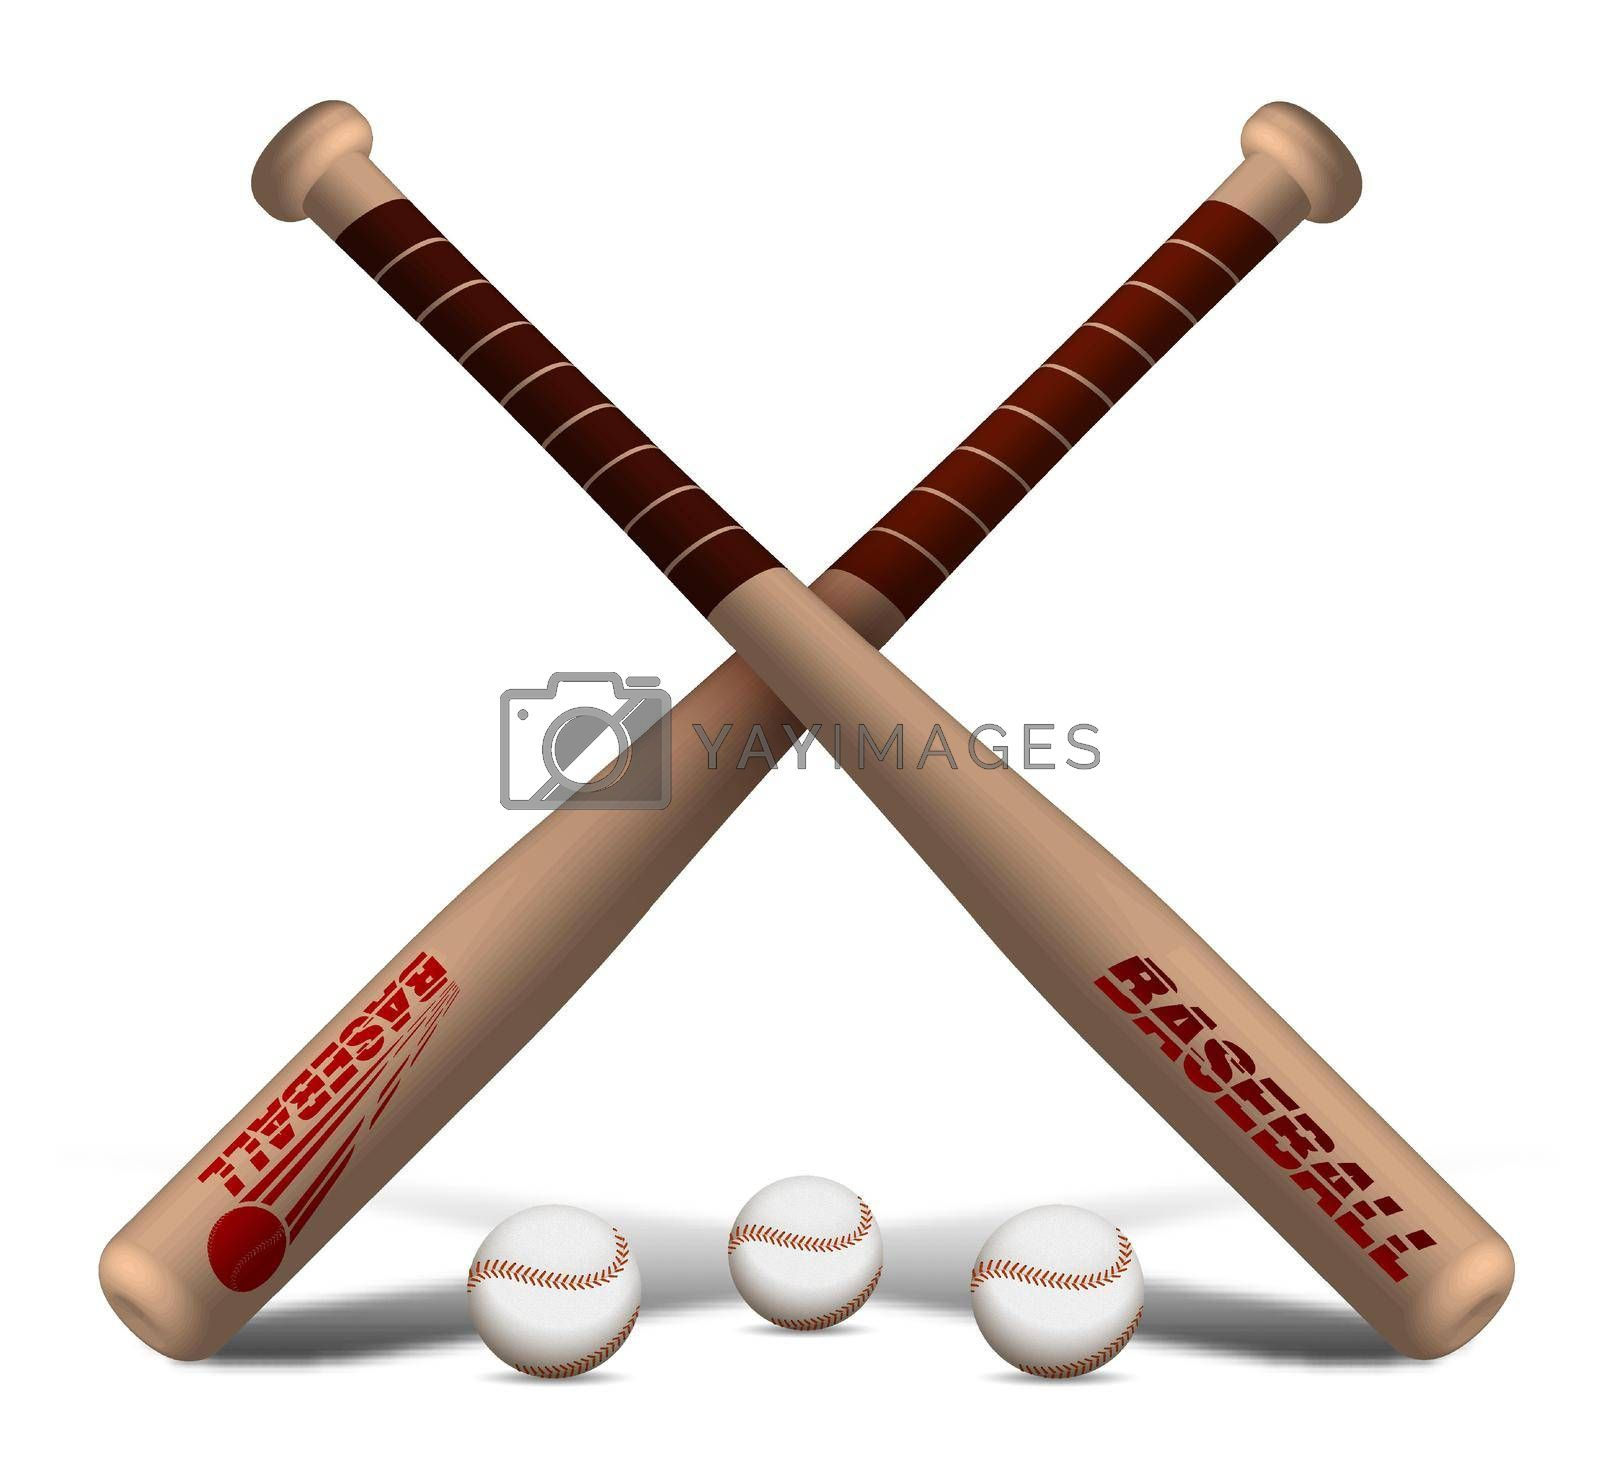 crossed sports wooden baseball bats with balls. American national sport. Active lifestyle. Realistic vector